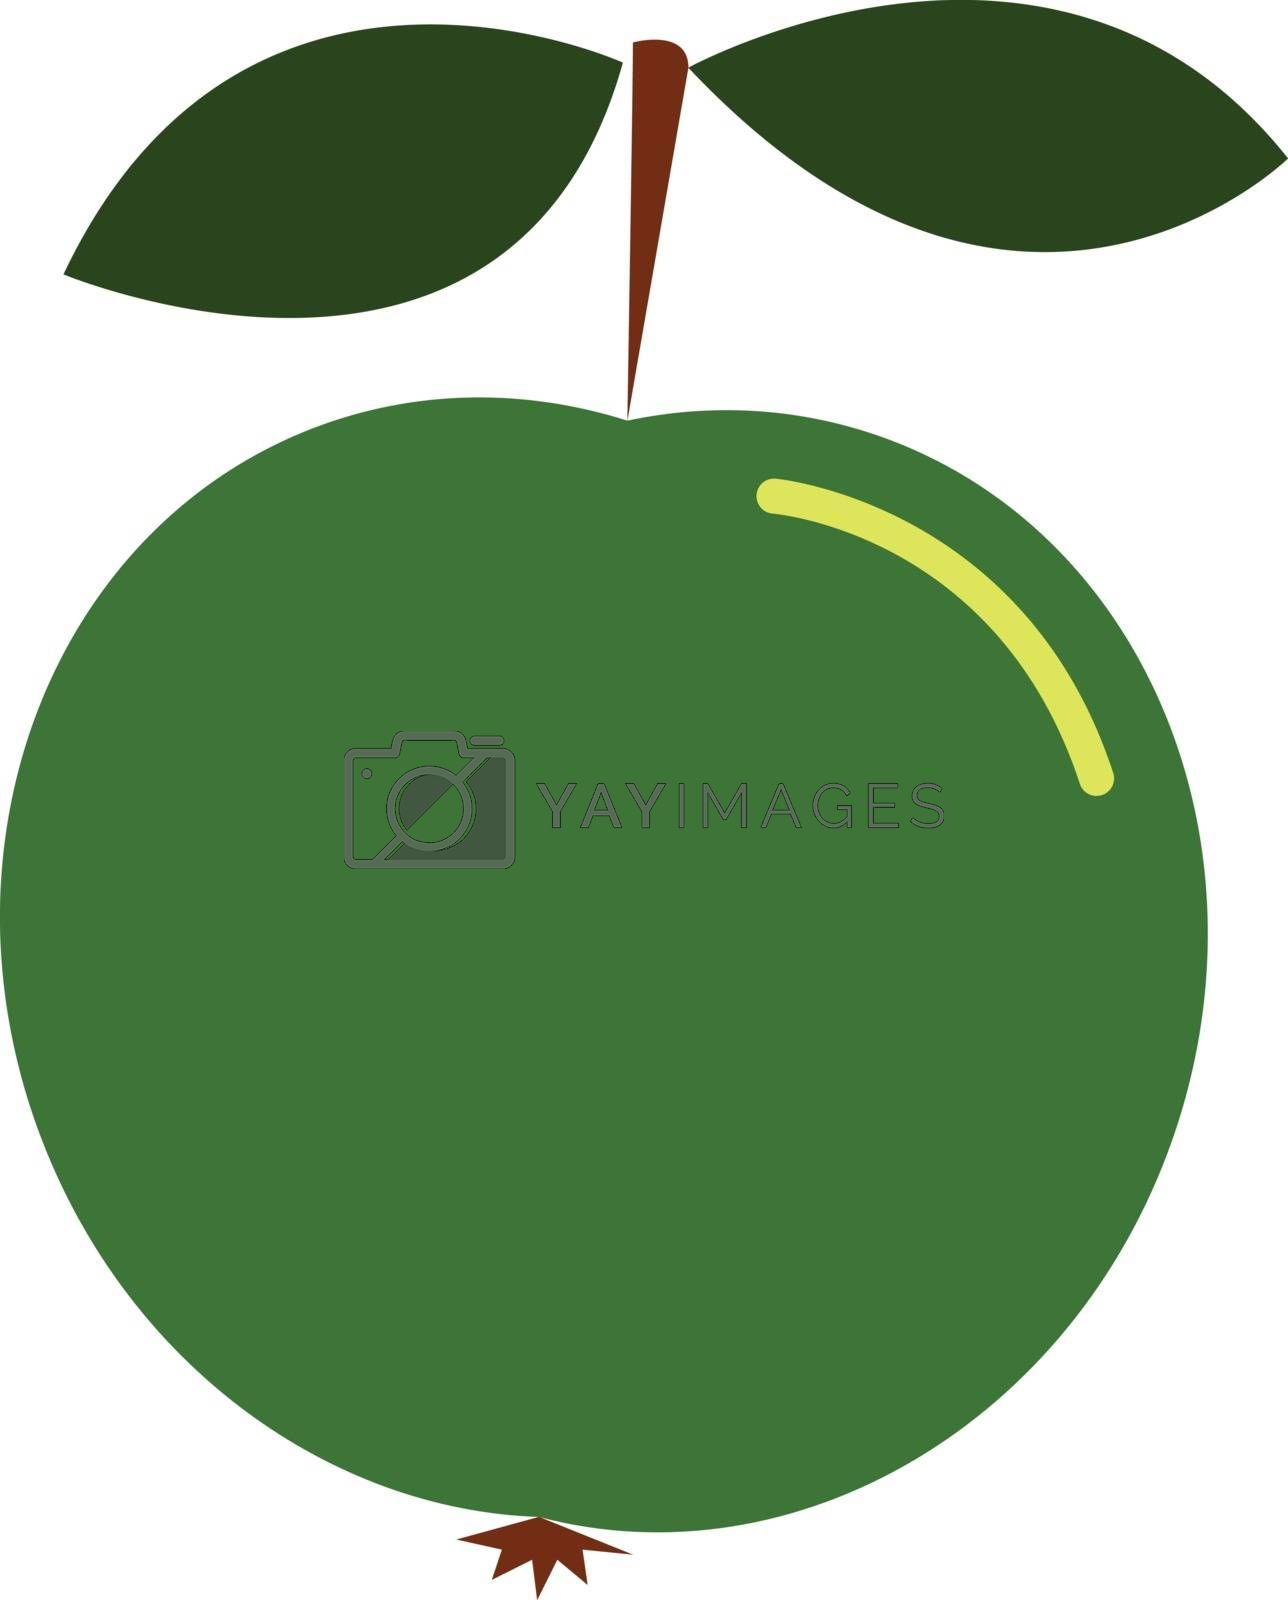 Royalty free image of Clipart of a green apple with a short brown stalk and two leaves by Morphart